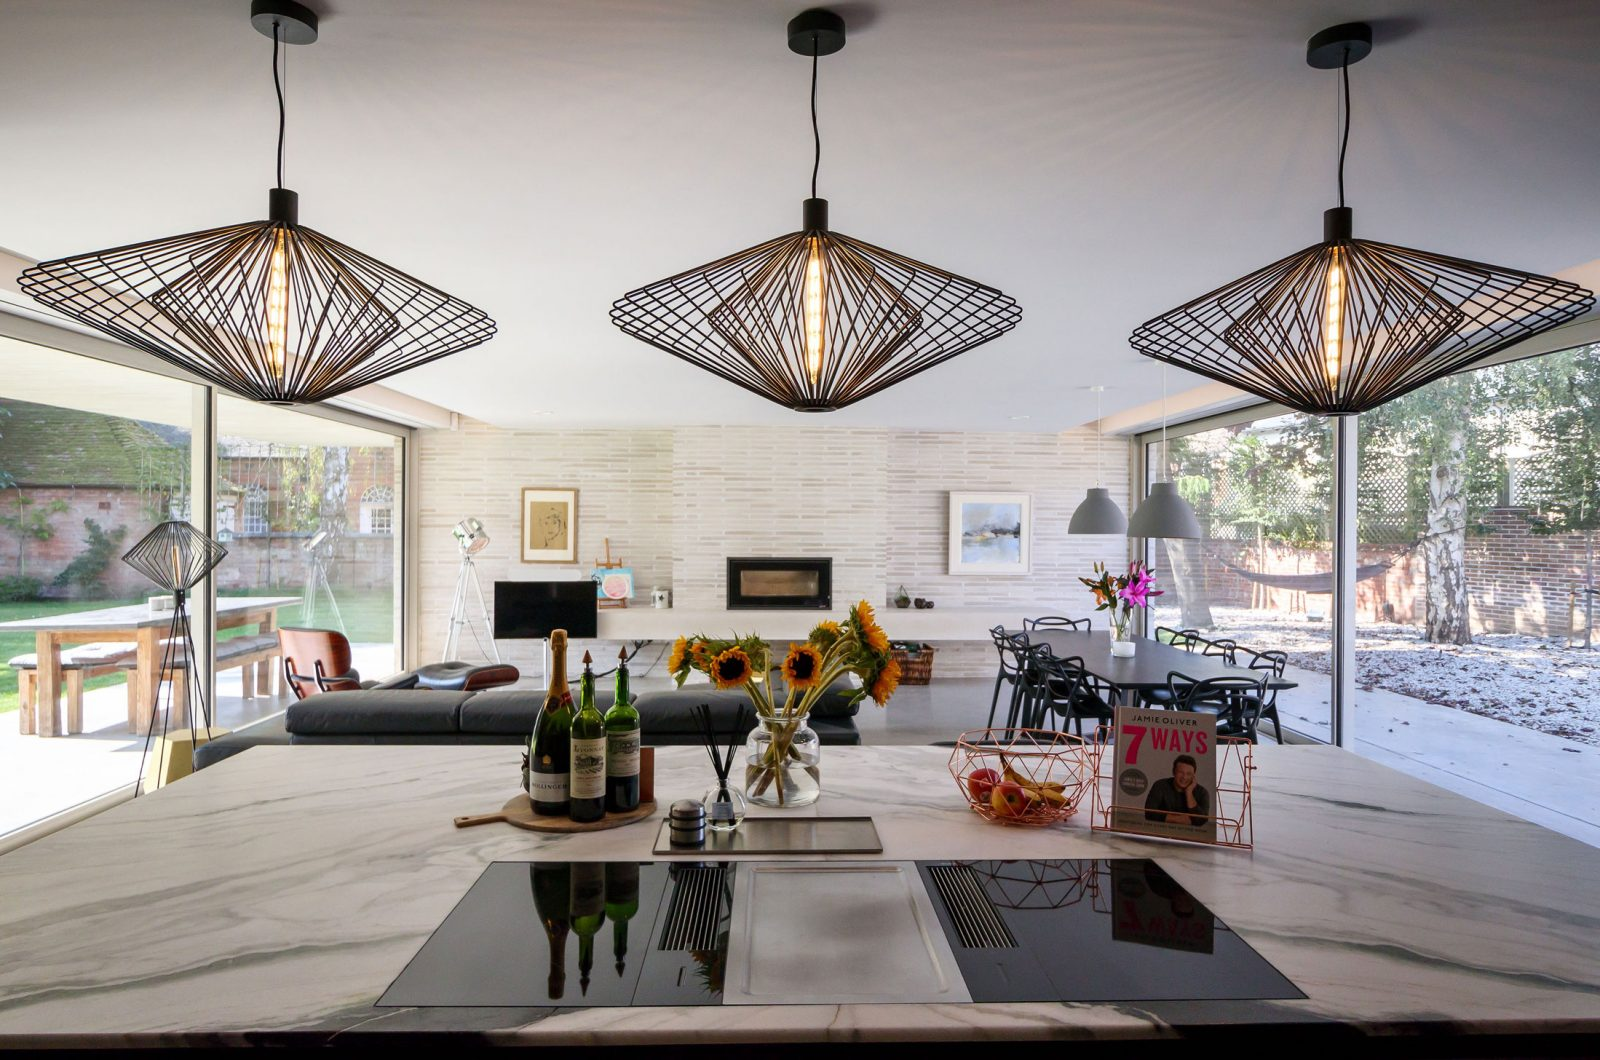 Studio Spicer project looking onto an open plan Kitchen with 3 pendant lights